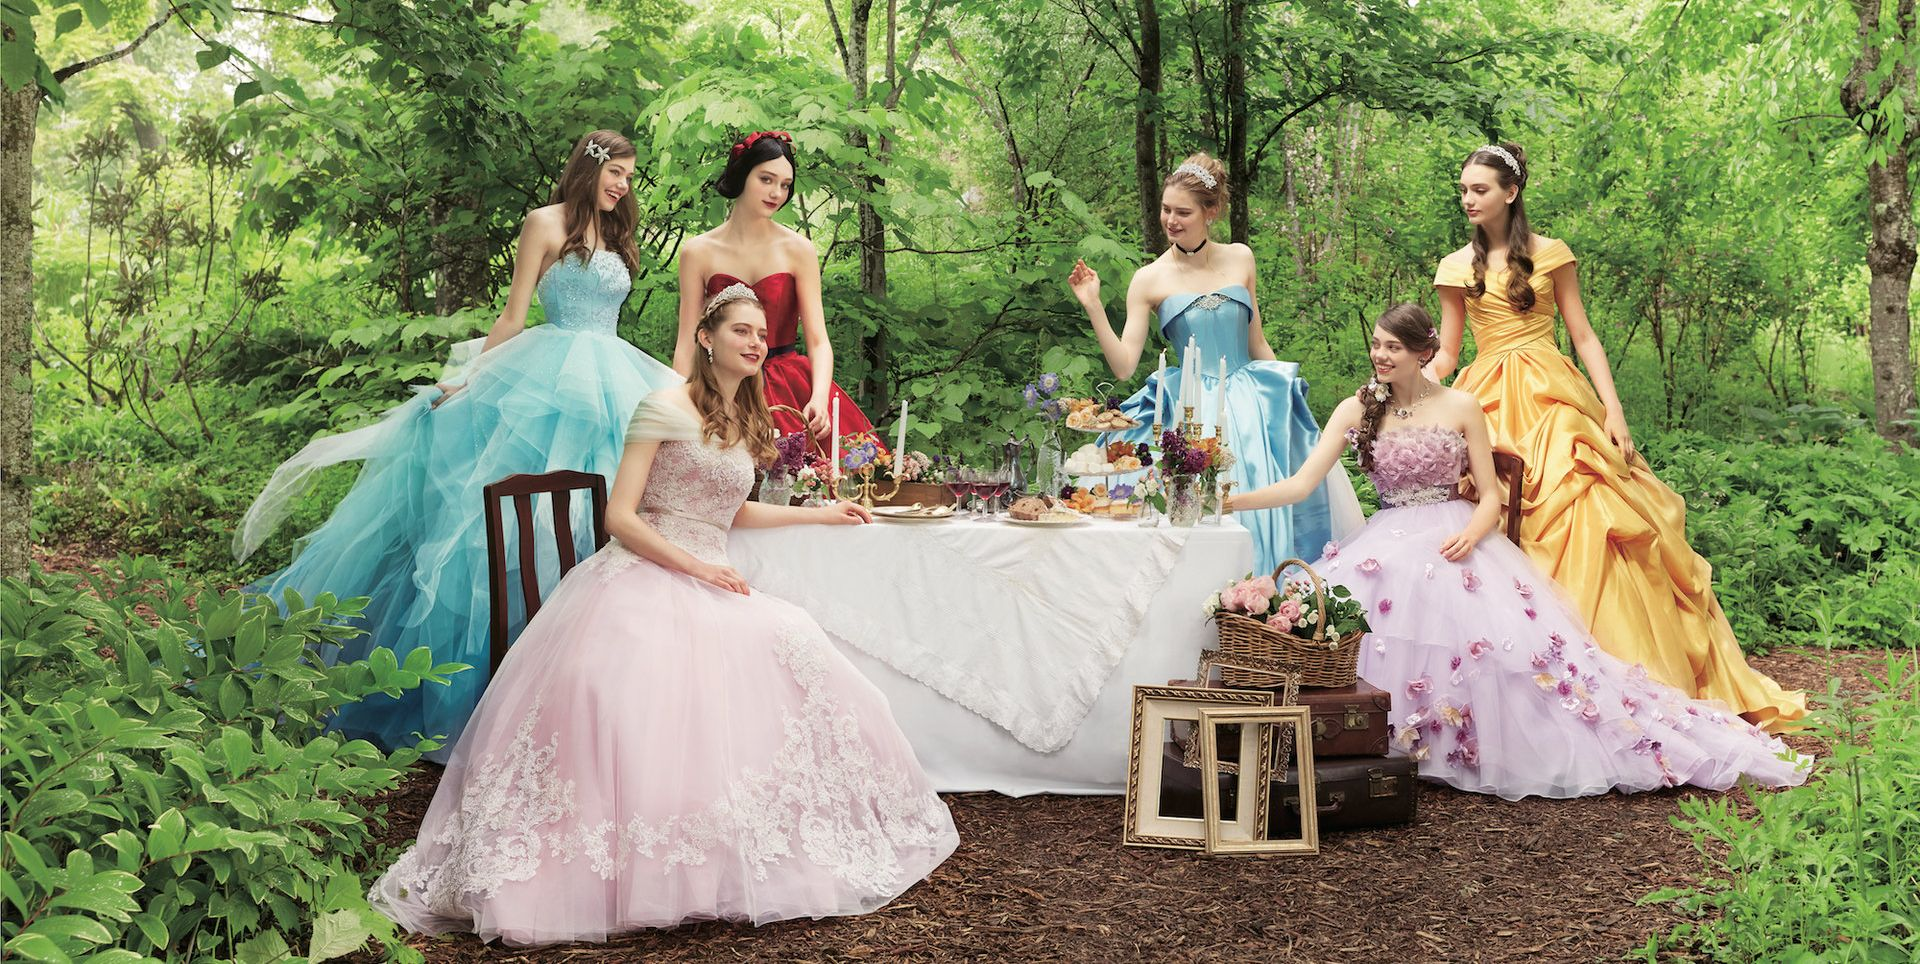 Holy Magical Sh*t, Look at These Gorgeous Disney Princess Wedding Dresses